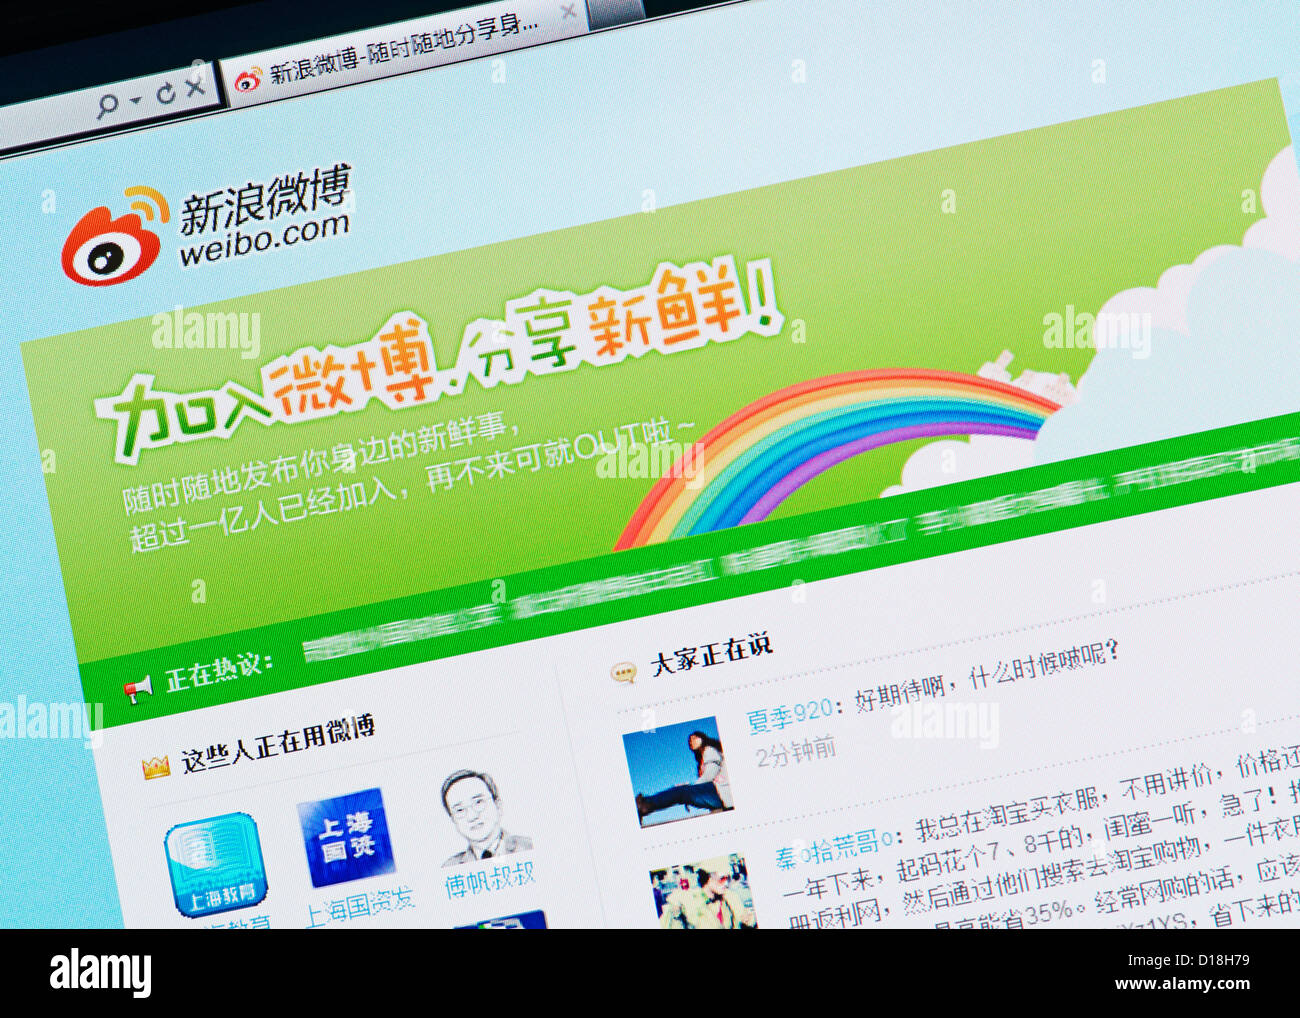 Sina Weibo Website The Chinese Microblogging Social Networking